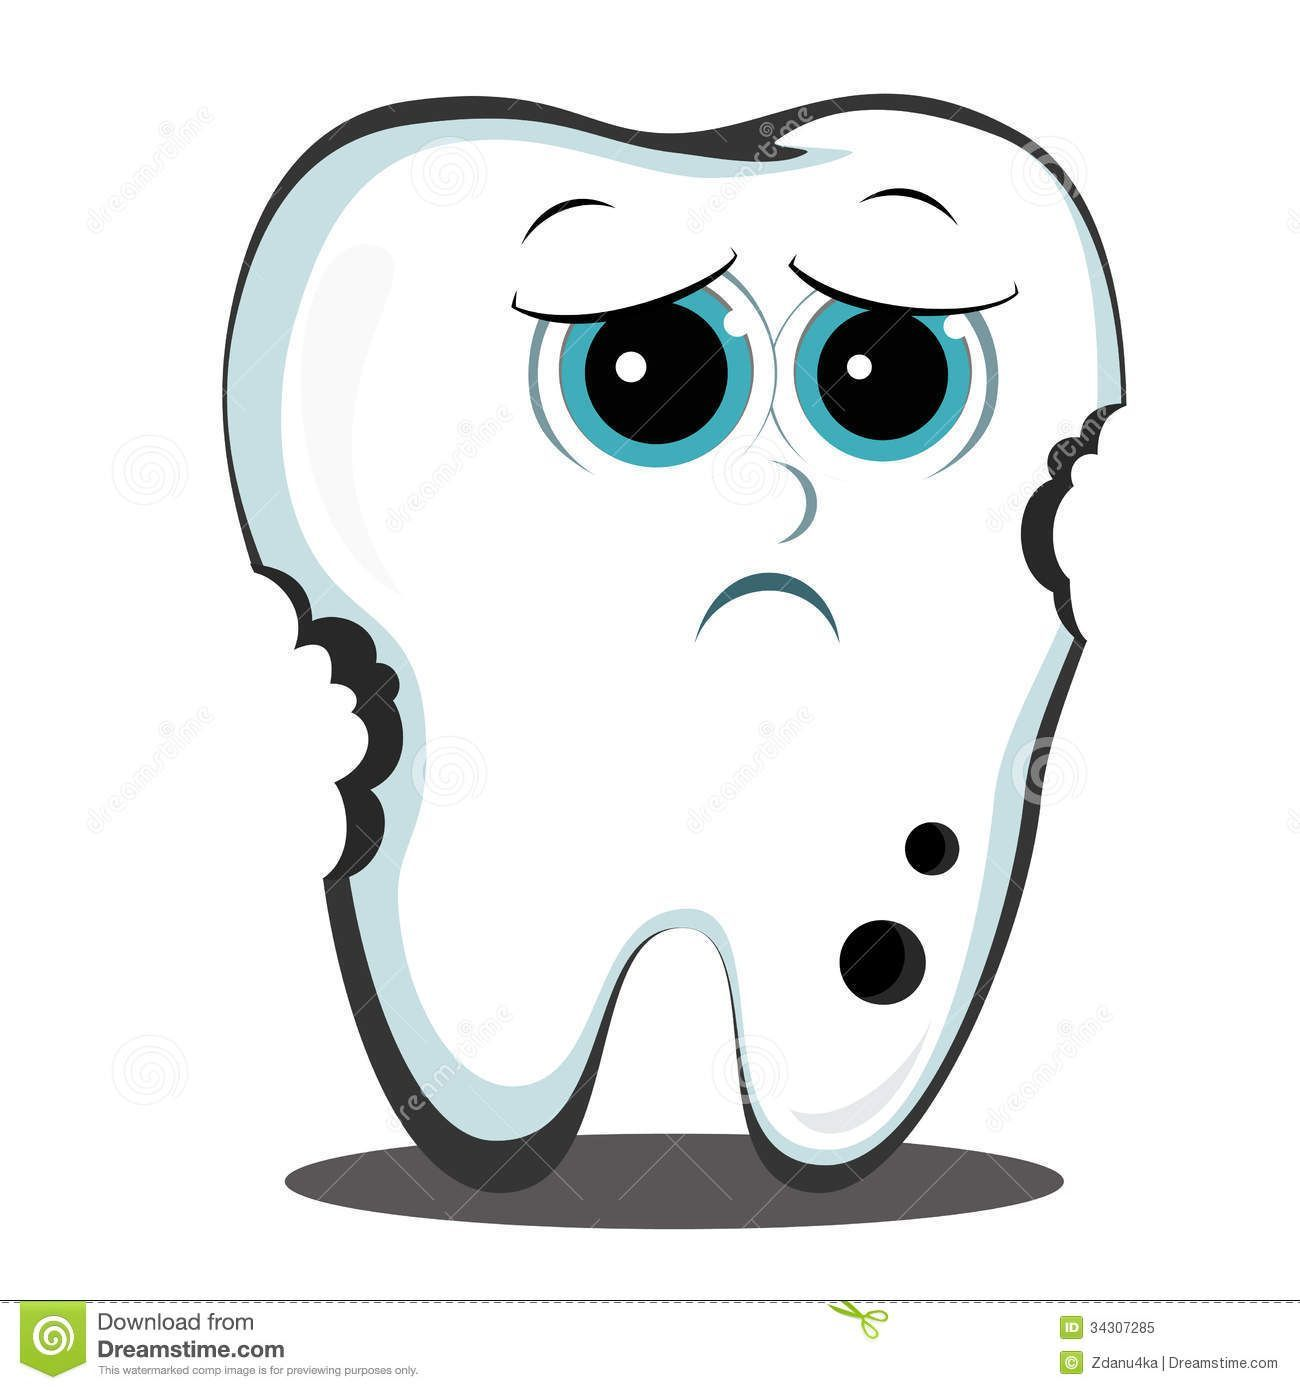 Cavity images clipart image library stock Cavity tooth clipart 4 » Clipart Portal image library stock